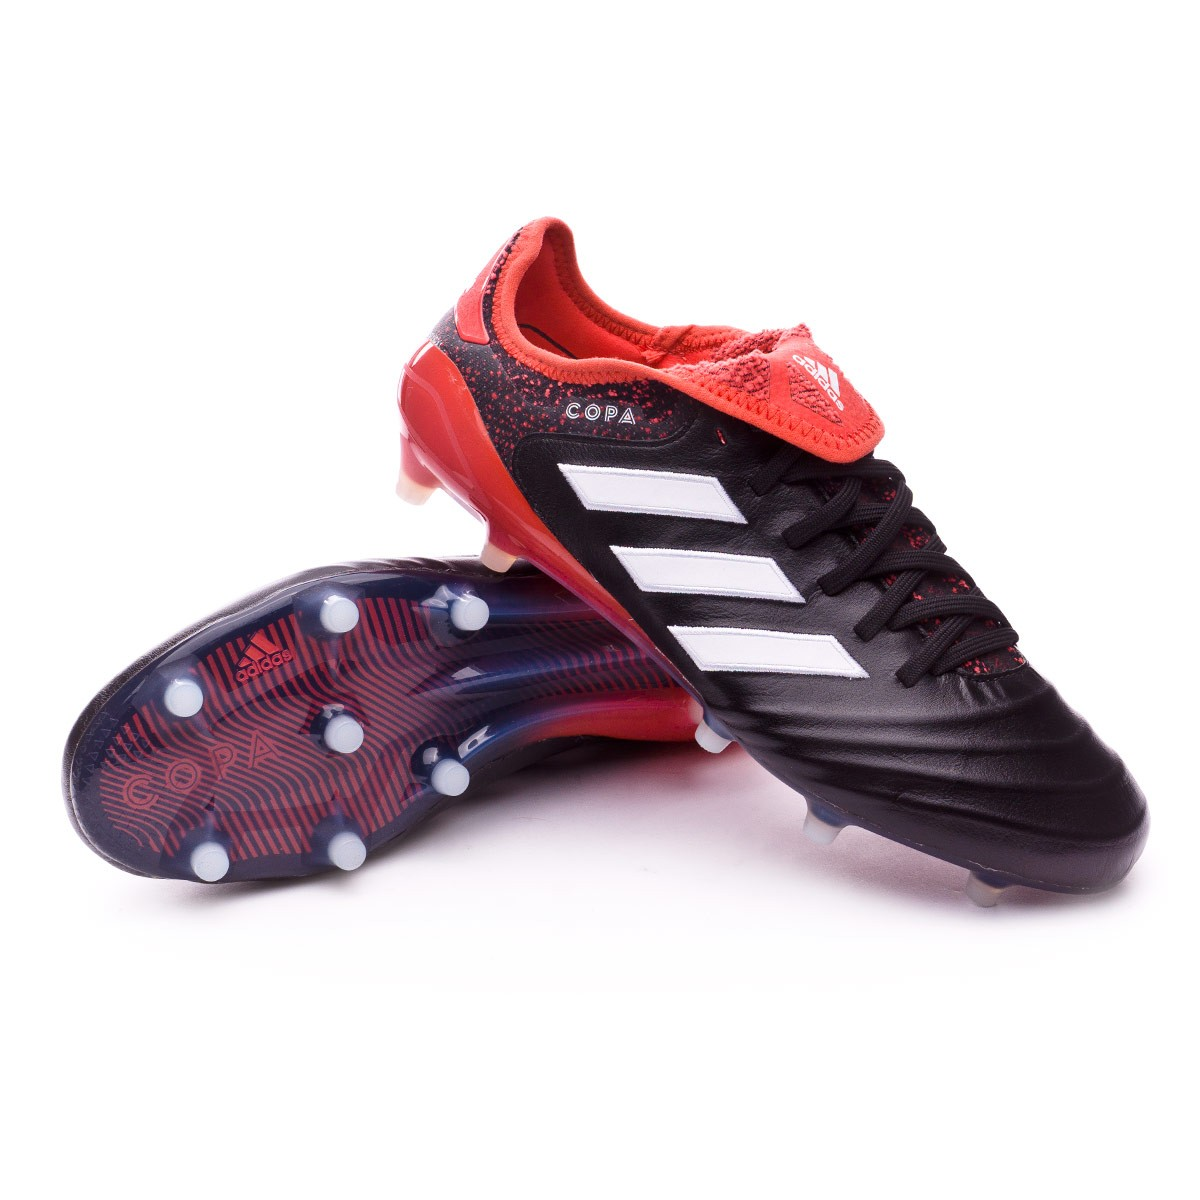 2a72d3308ea adidas Copa 18.1 FG Football Boots. Core black-White-Real coral ...